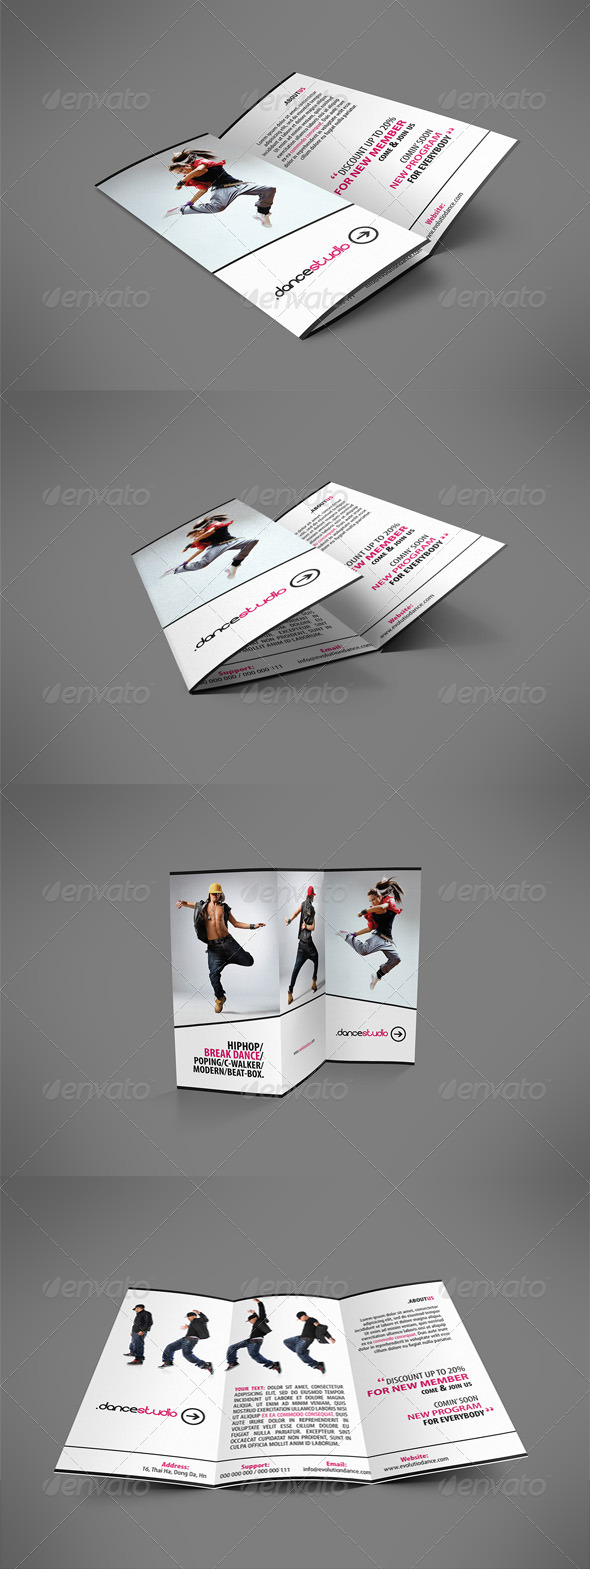 GraphicRiver Street Art Brochure Tri-fold 3985149